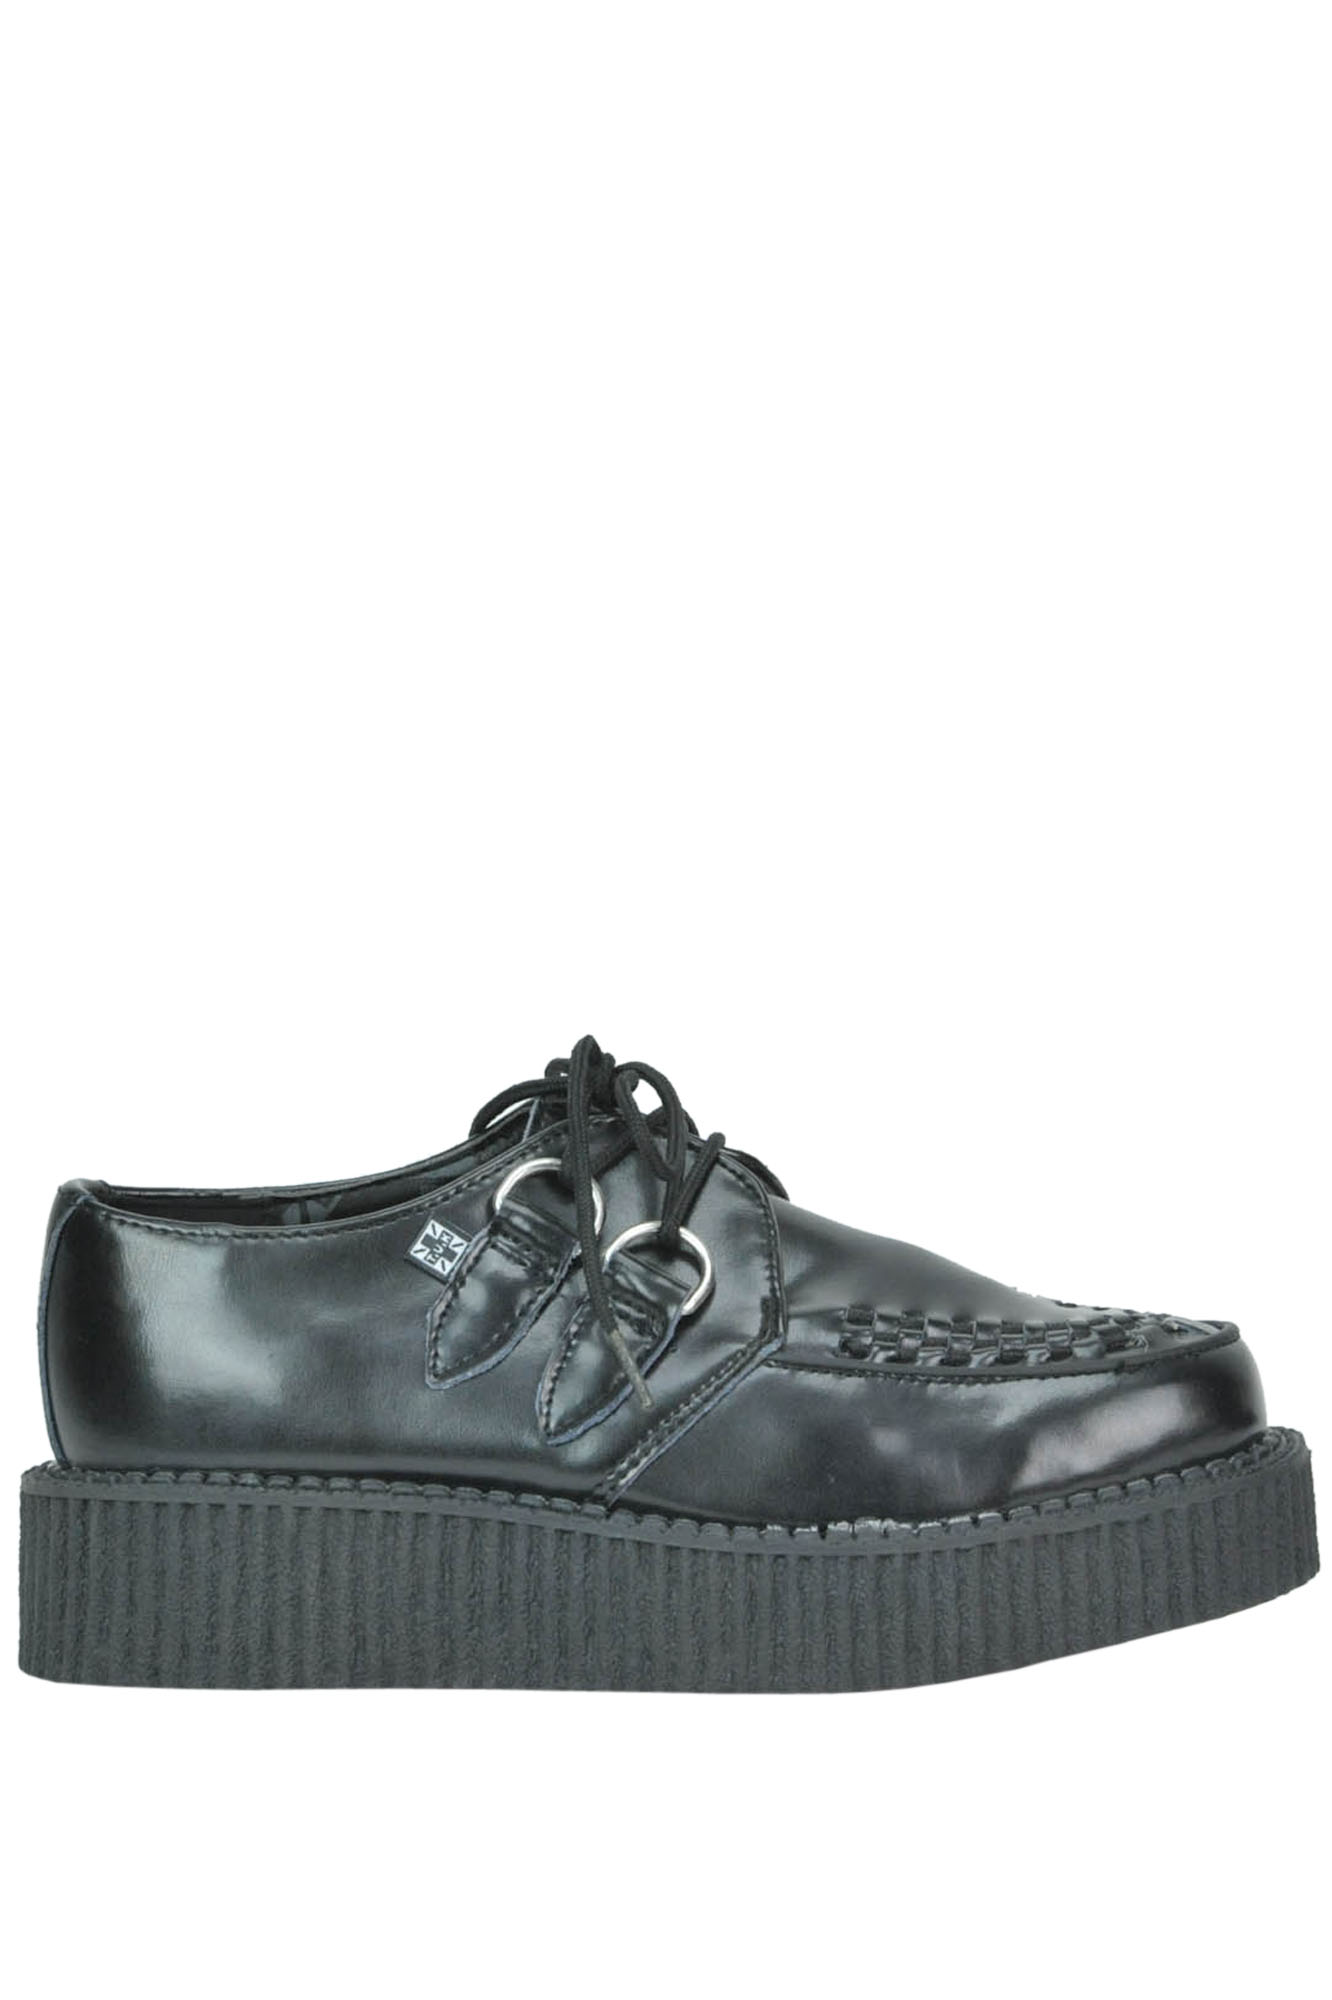 Image of Scarpe creepers in pelle